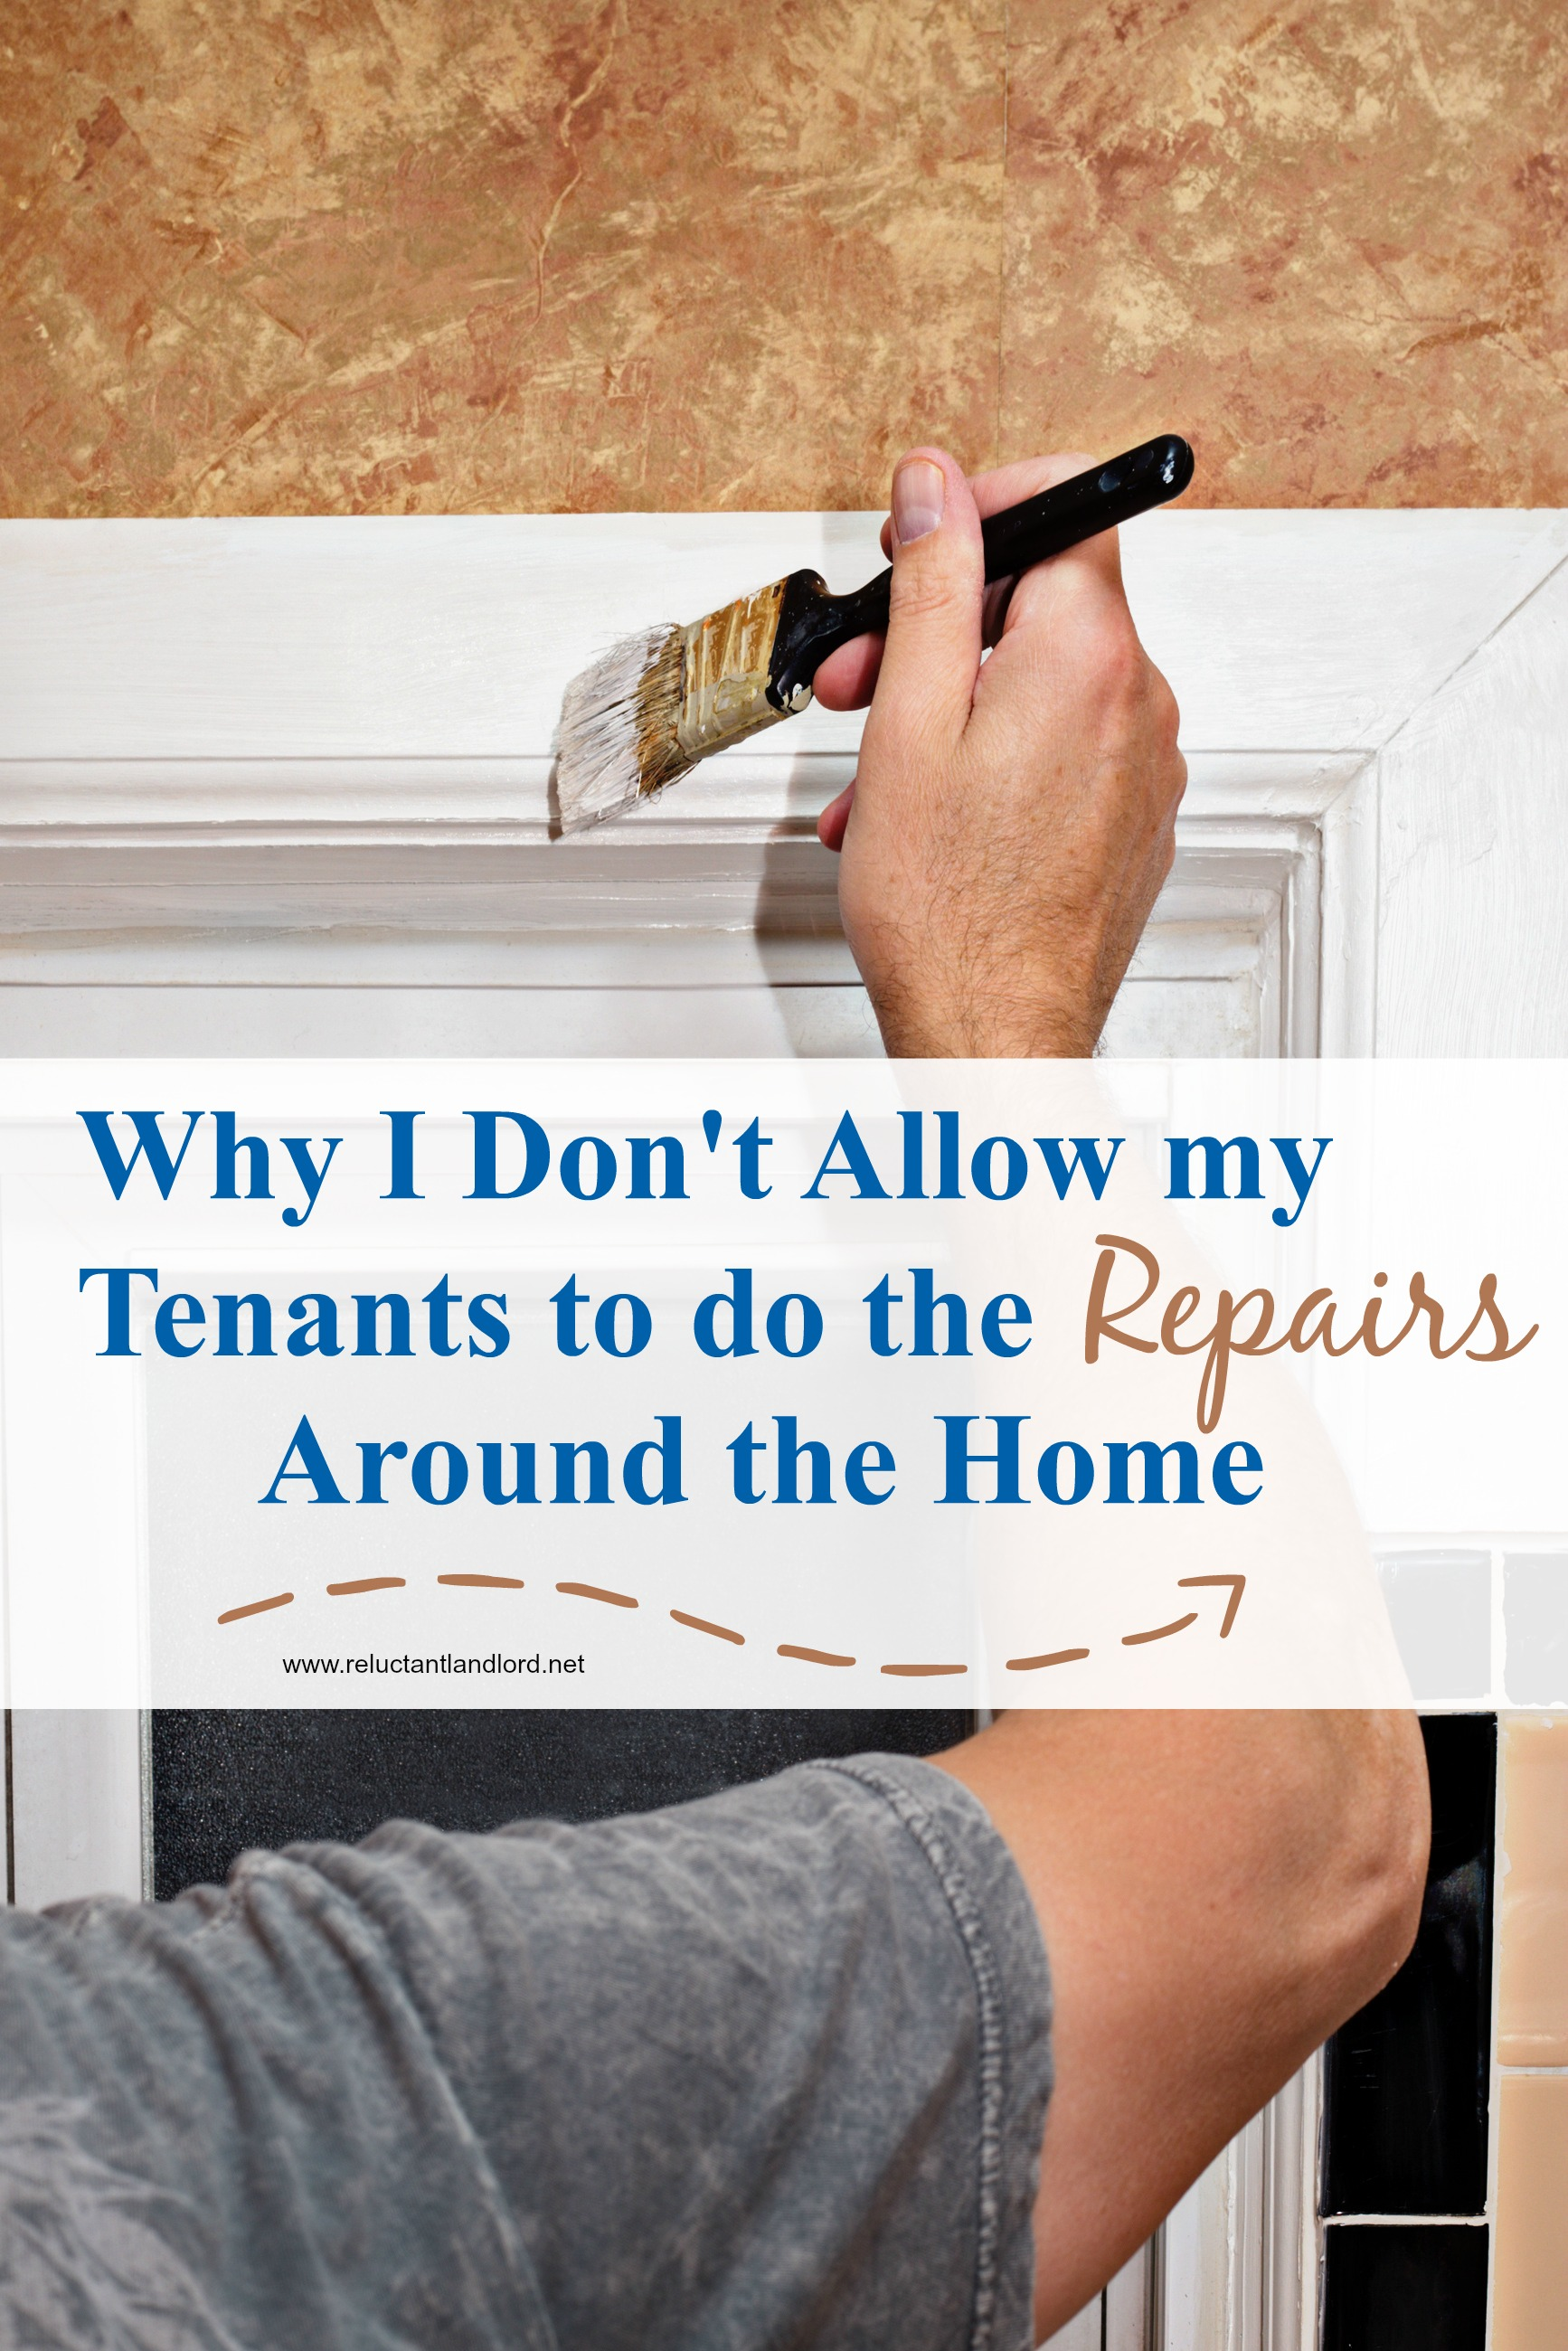 Why I don't Allow my Tenants to do Repairs Around the Home